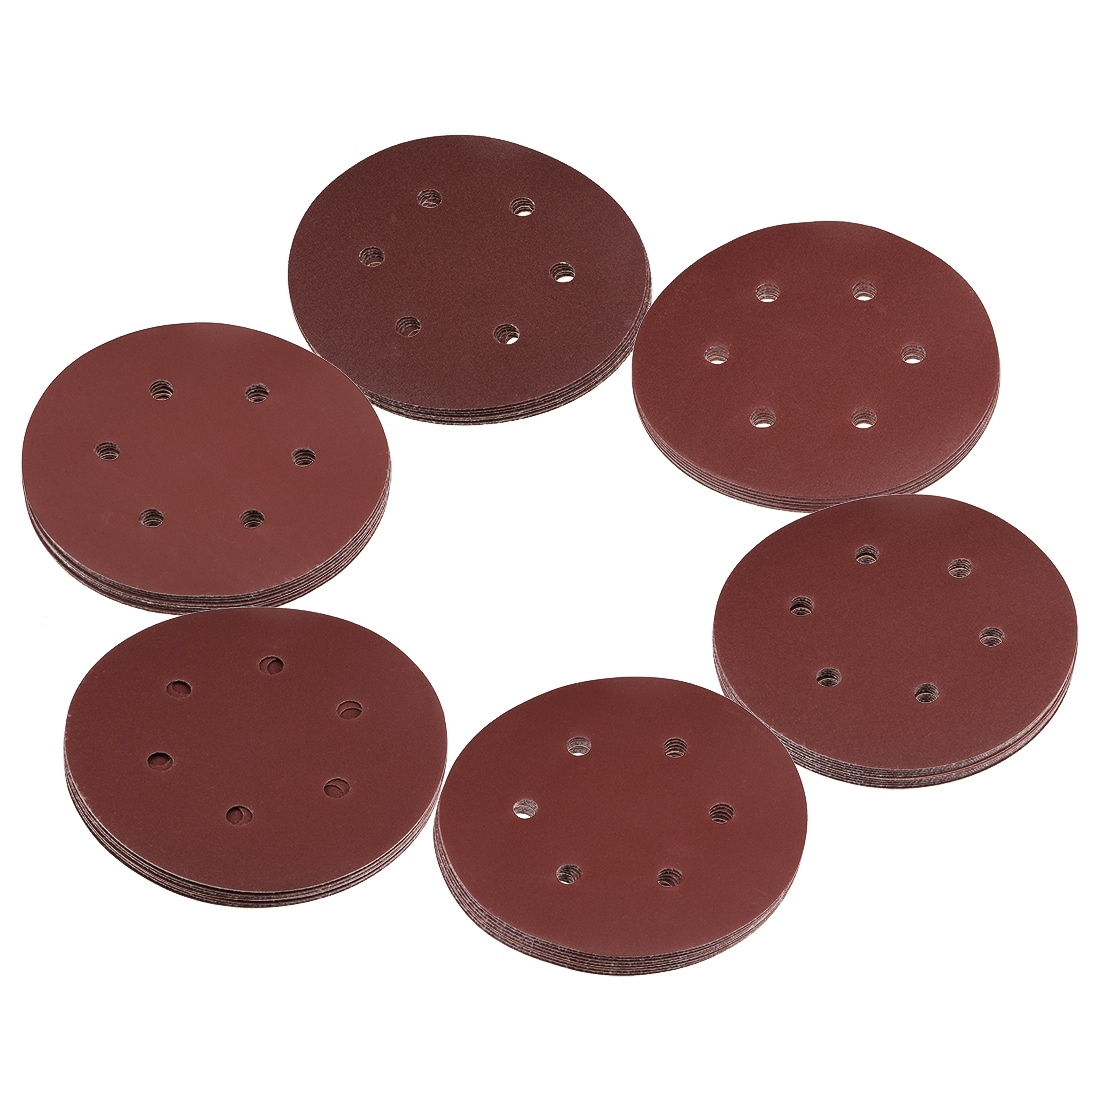 Bosch 6 Pack of Assorted Grits 6 Inch 6 Hole Sanding Discs # SR6R000